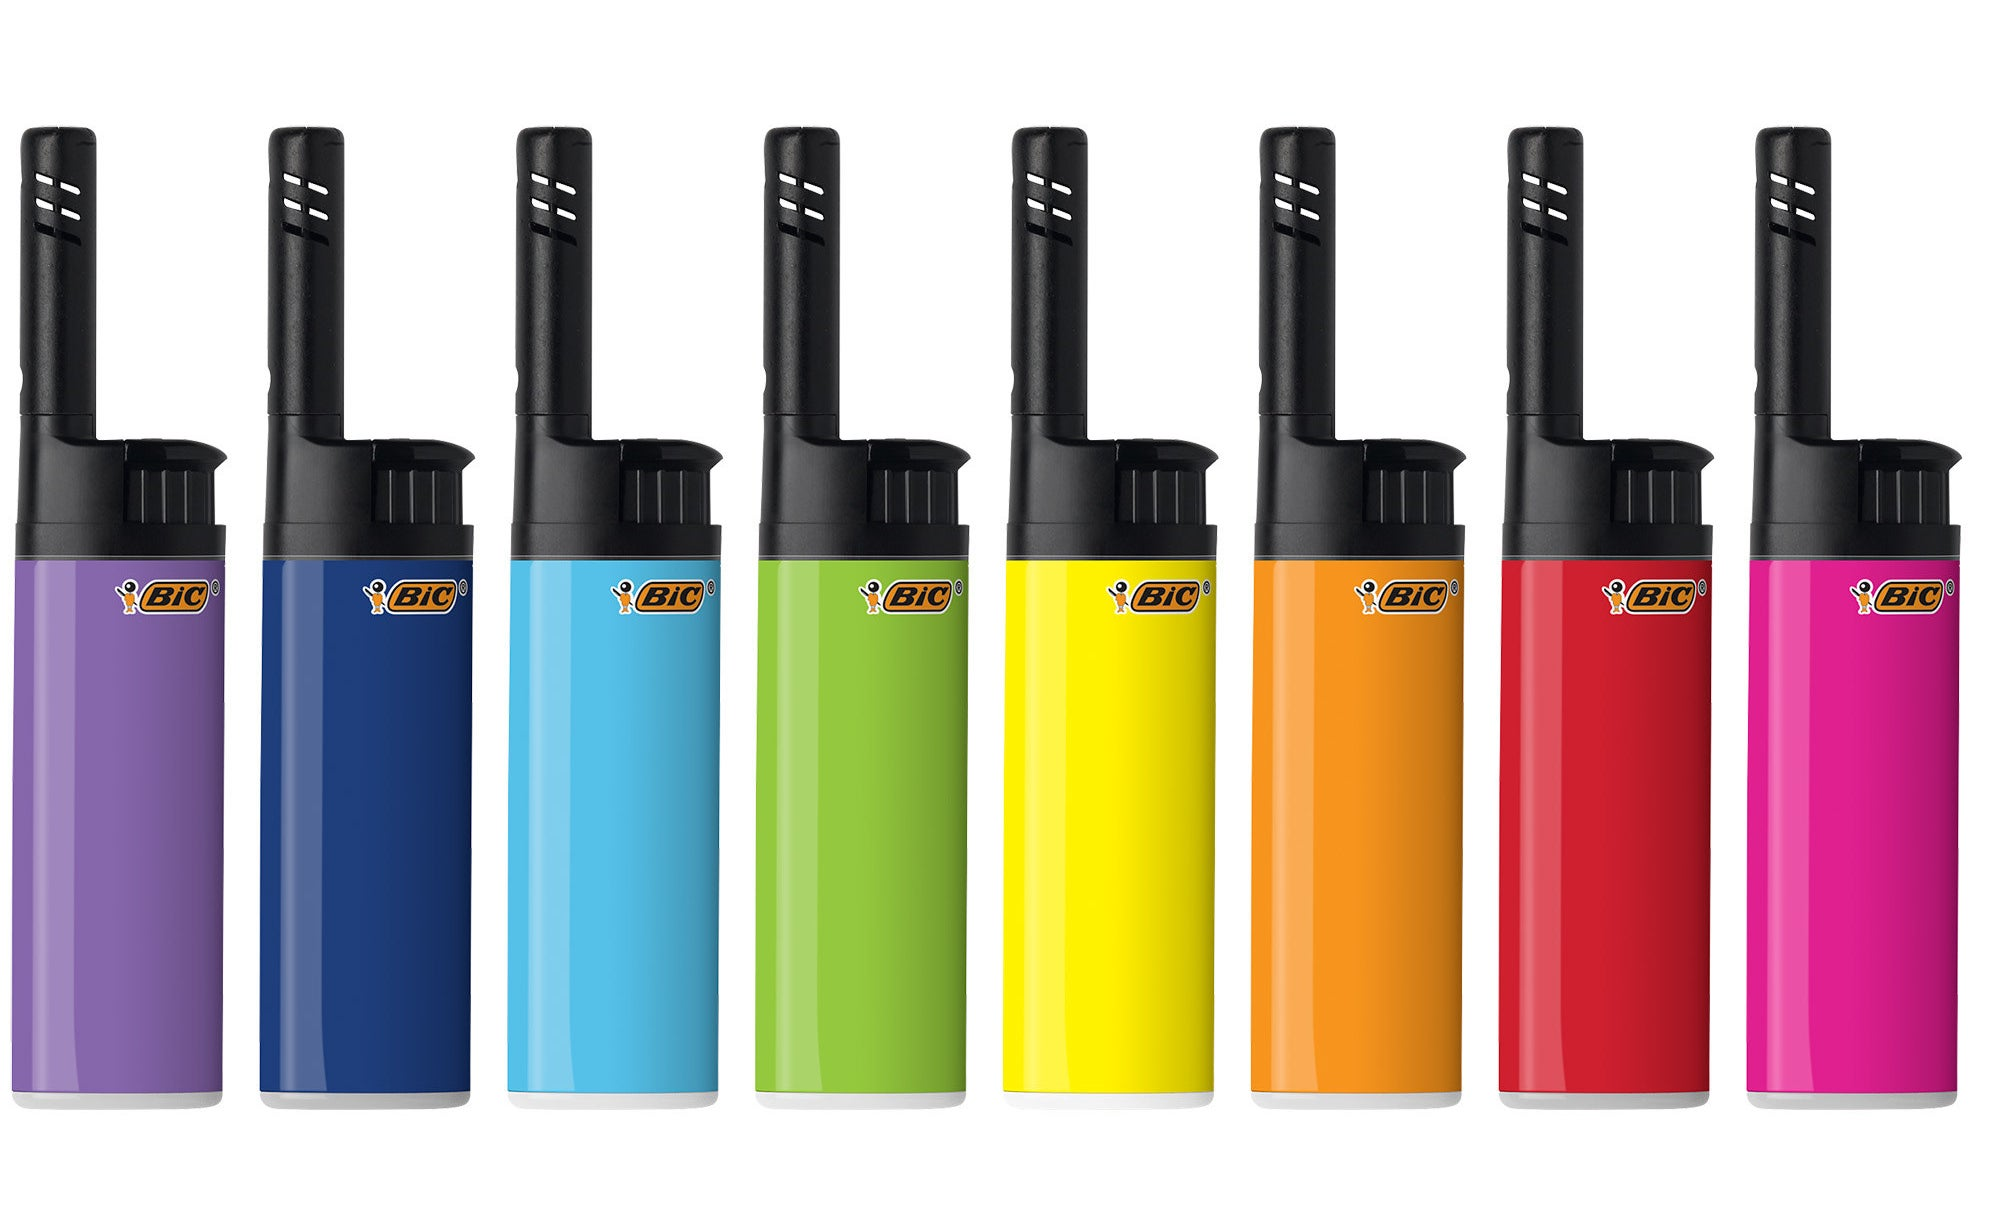 A rainbow array of Bic lighters with black tops